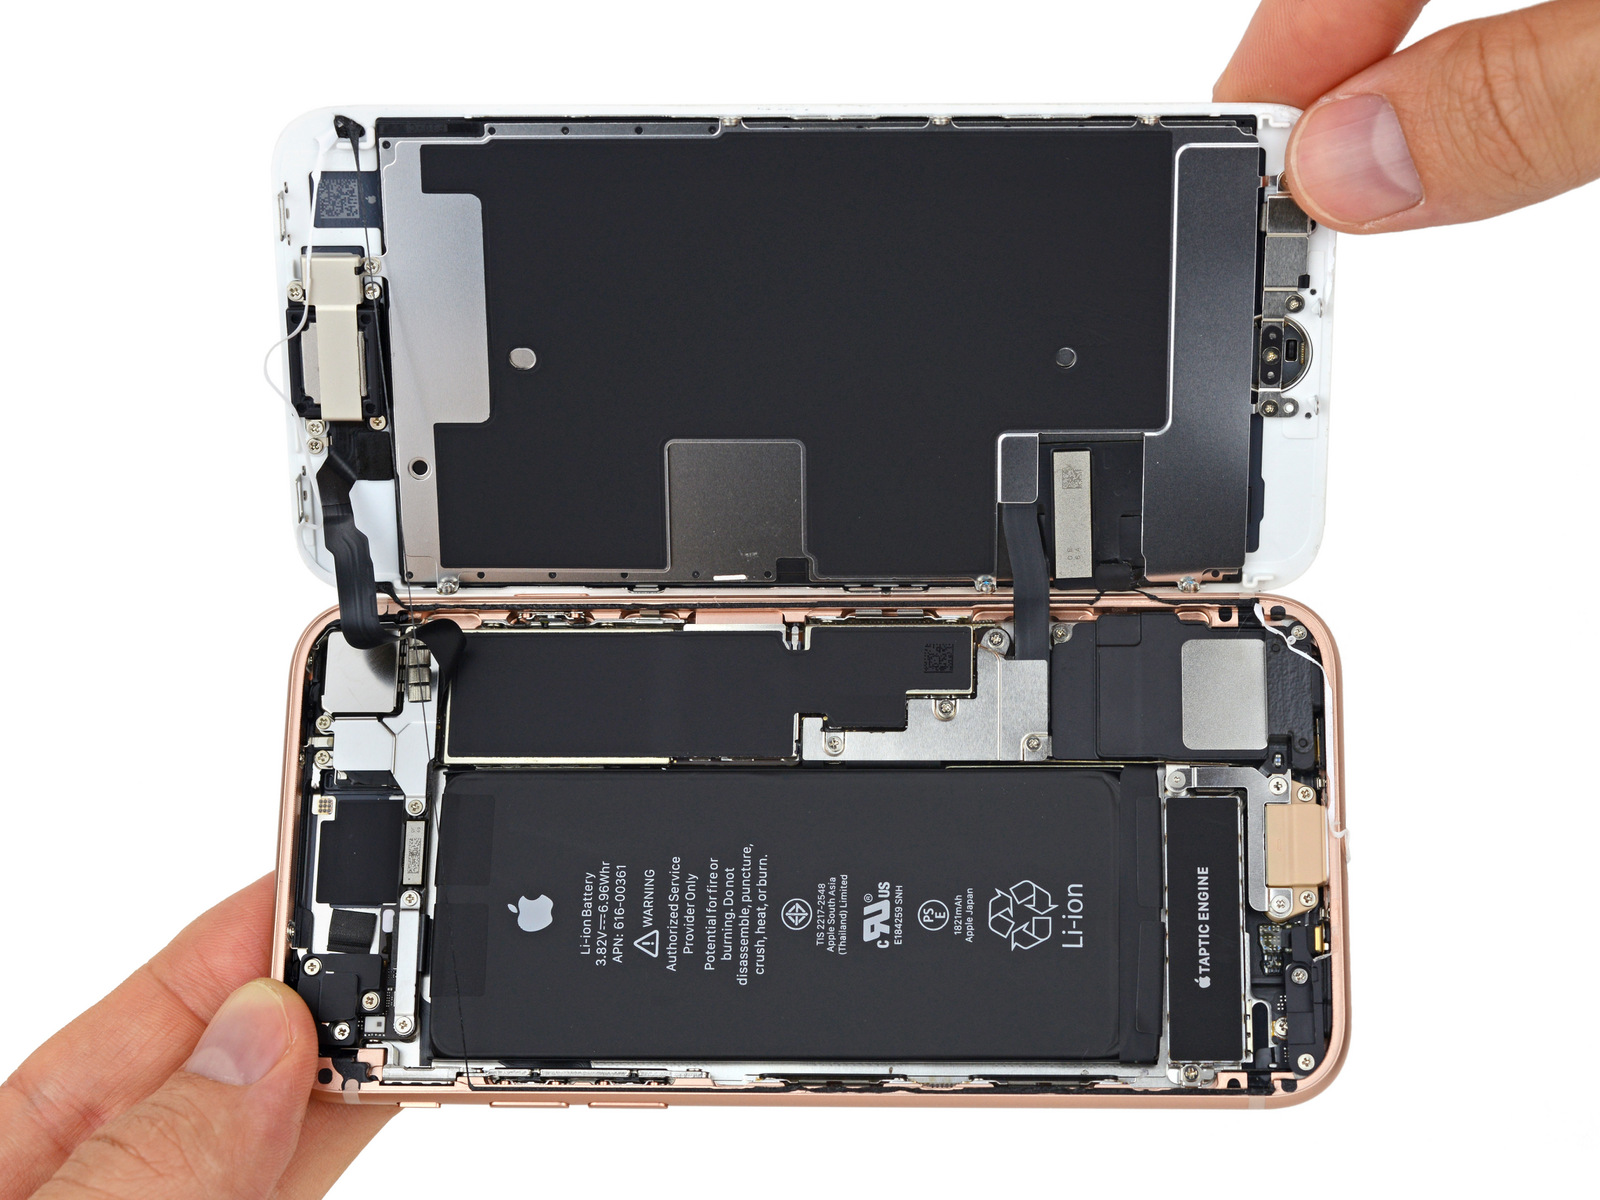 Football Mpn Wtf1645id as well Ifixits Iphone 8 Teardown Finds A Smaller Battery And Lots Of Glue also Preview in addition Ti 84 Plus Ce Graphing Calculator Mpn 84plscetray2015 furthermore Predator Generator Reviews For All Models. on repair list